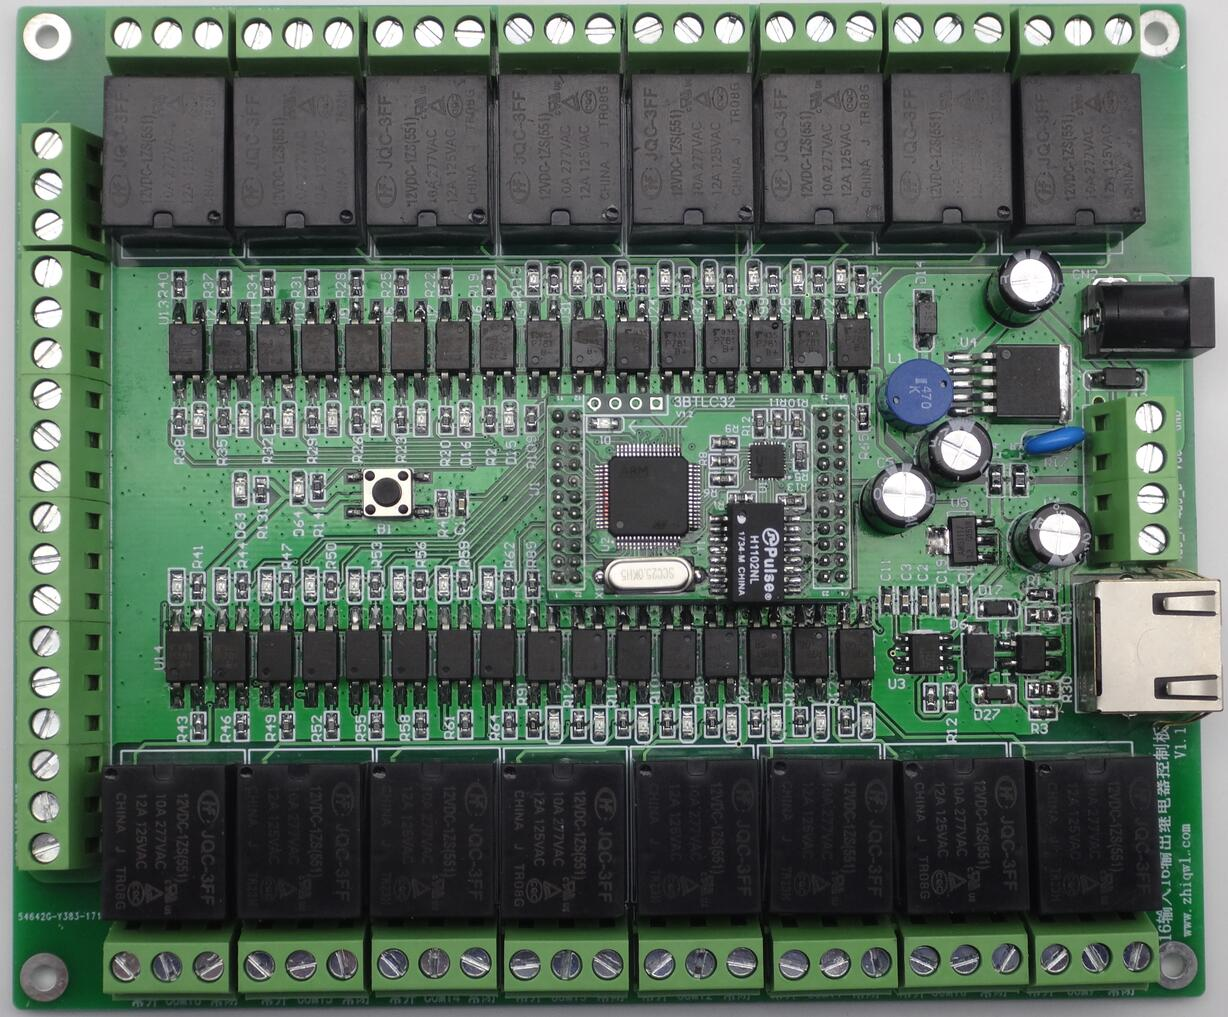 16-Channel 16-Way Network Relay Control Board/RS485/Modbus TCP/RTU/Industrial/Programmable16-Channel 16-Way Network Relay Control Board/RS485/Modbus TCP/RTU/Industrial/Programmable